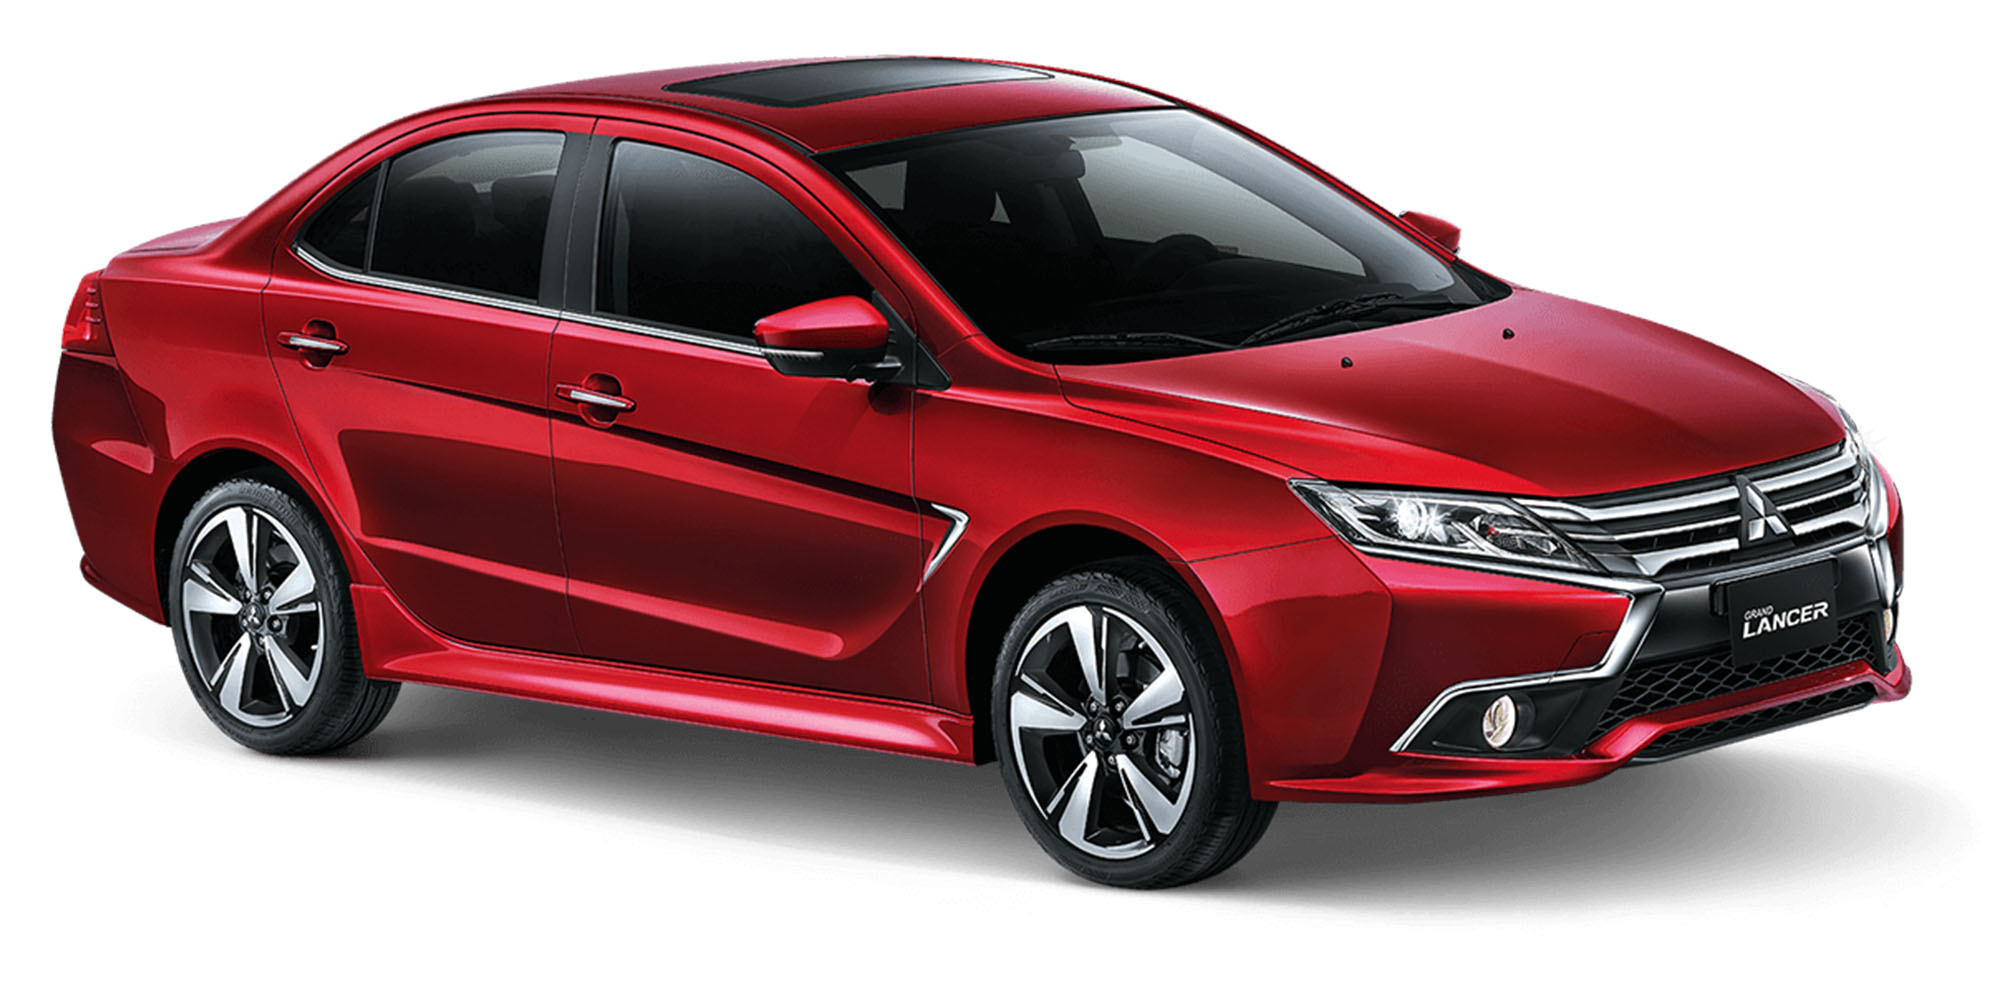 2017 Mitsubishi Grand Lancer Facelift Revealed In Taiwan